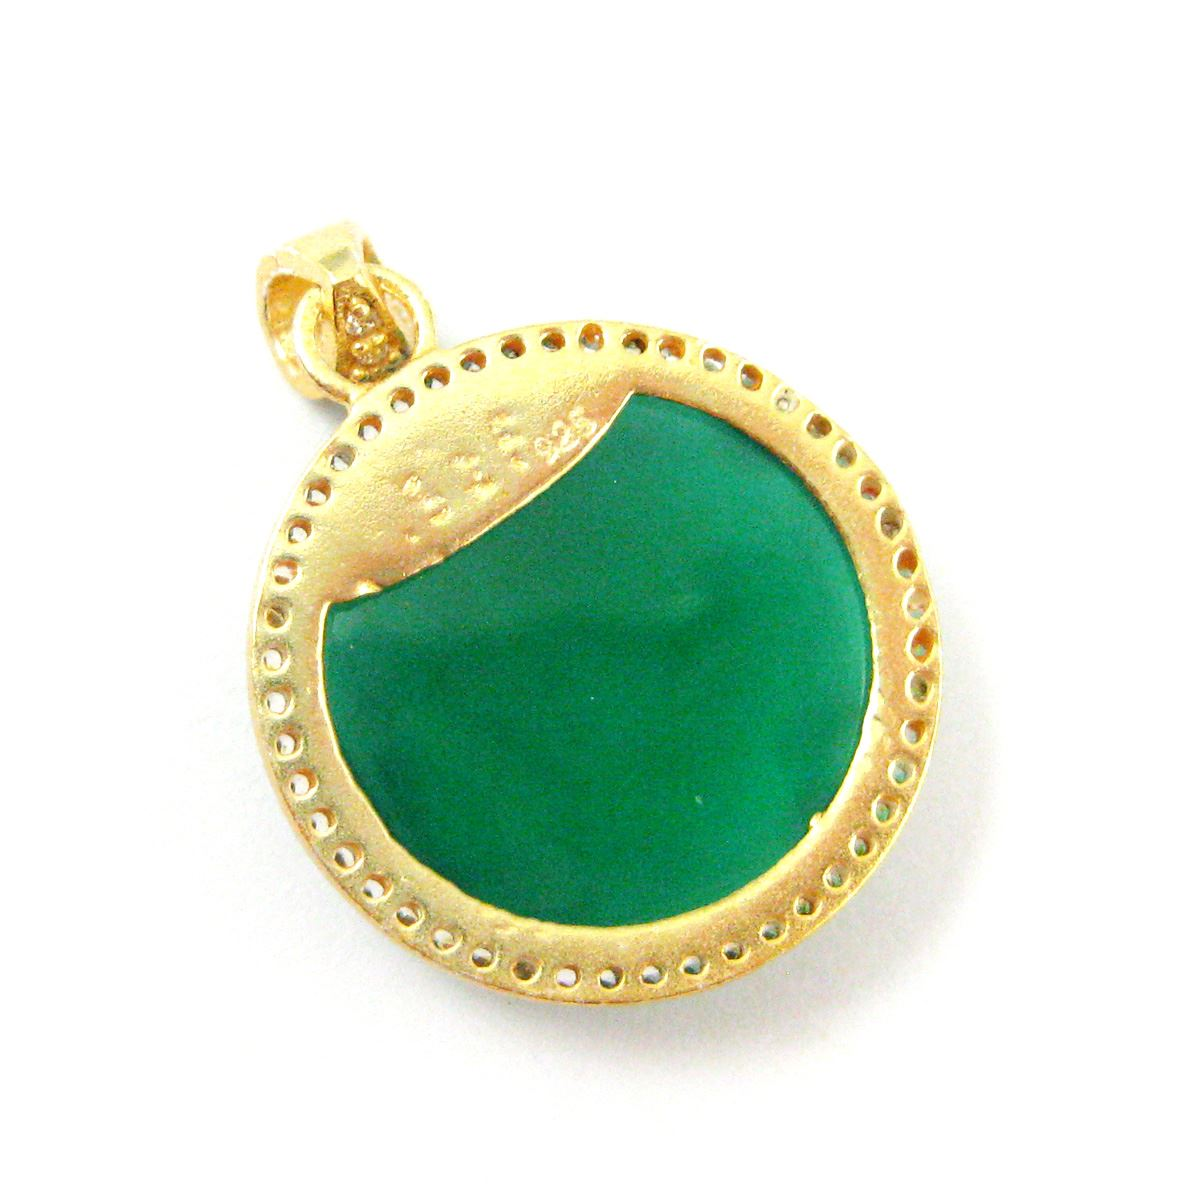 22k Gold plated Sterling Silver Pave Bezel Gemstone Pendant - Cubic Zirconia Pave Setting -  Round Faceted Stone- Green Onyx- 21mm